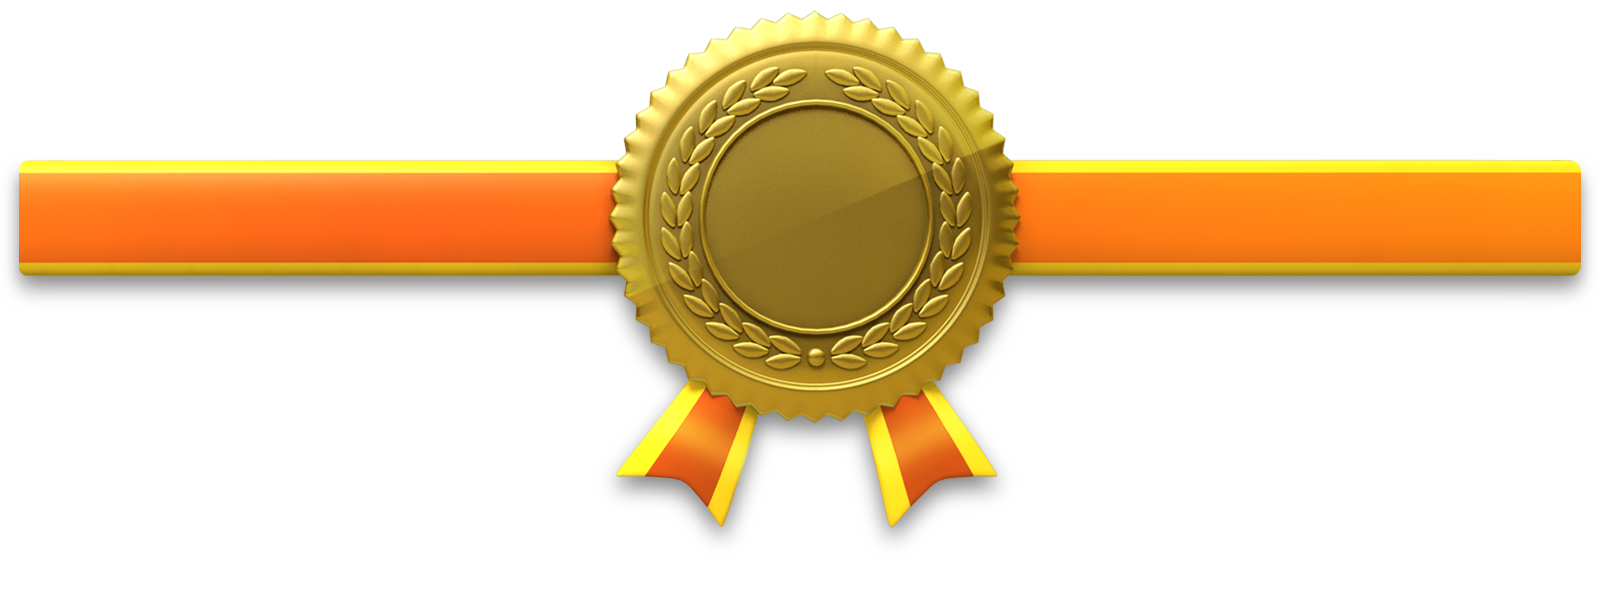 Ribbon clip art transprent. Certificate gold seal png picture transparent download